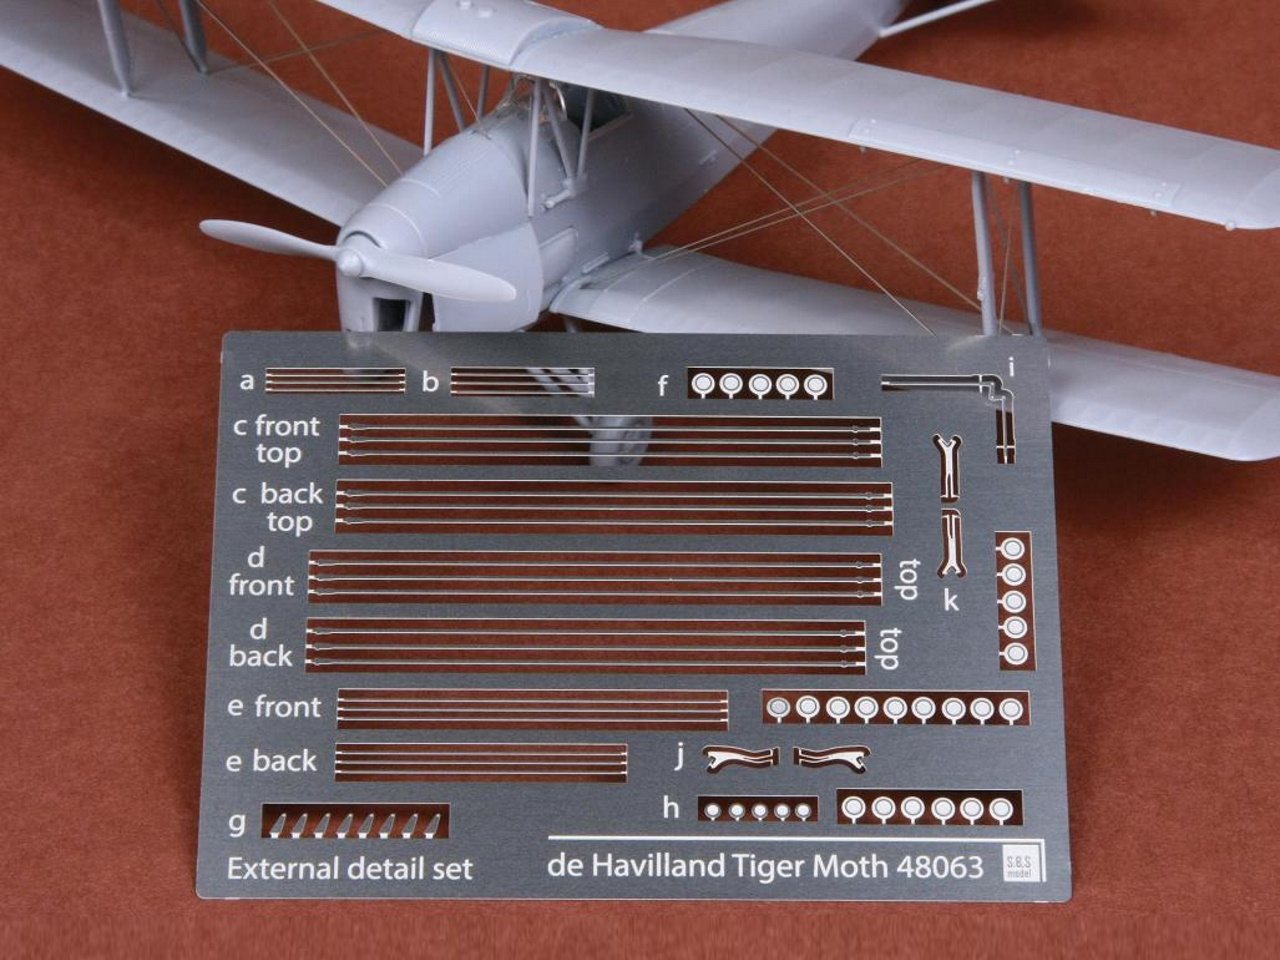 AeroScale : MikroMir: Tiger Moth Rigging Cables